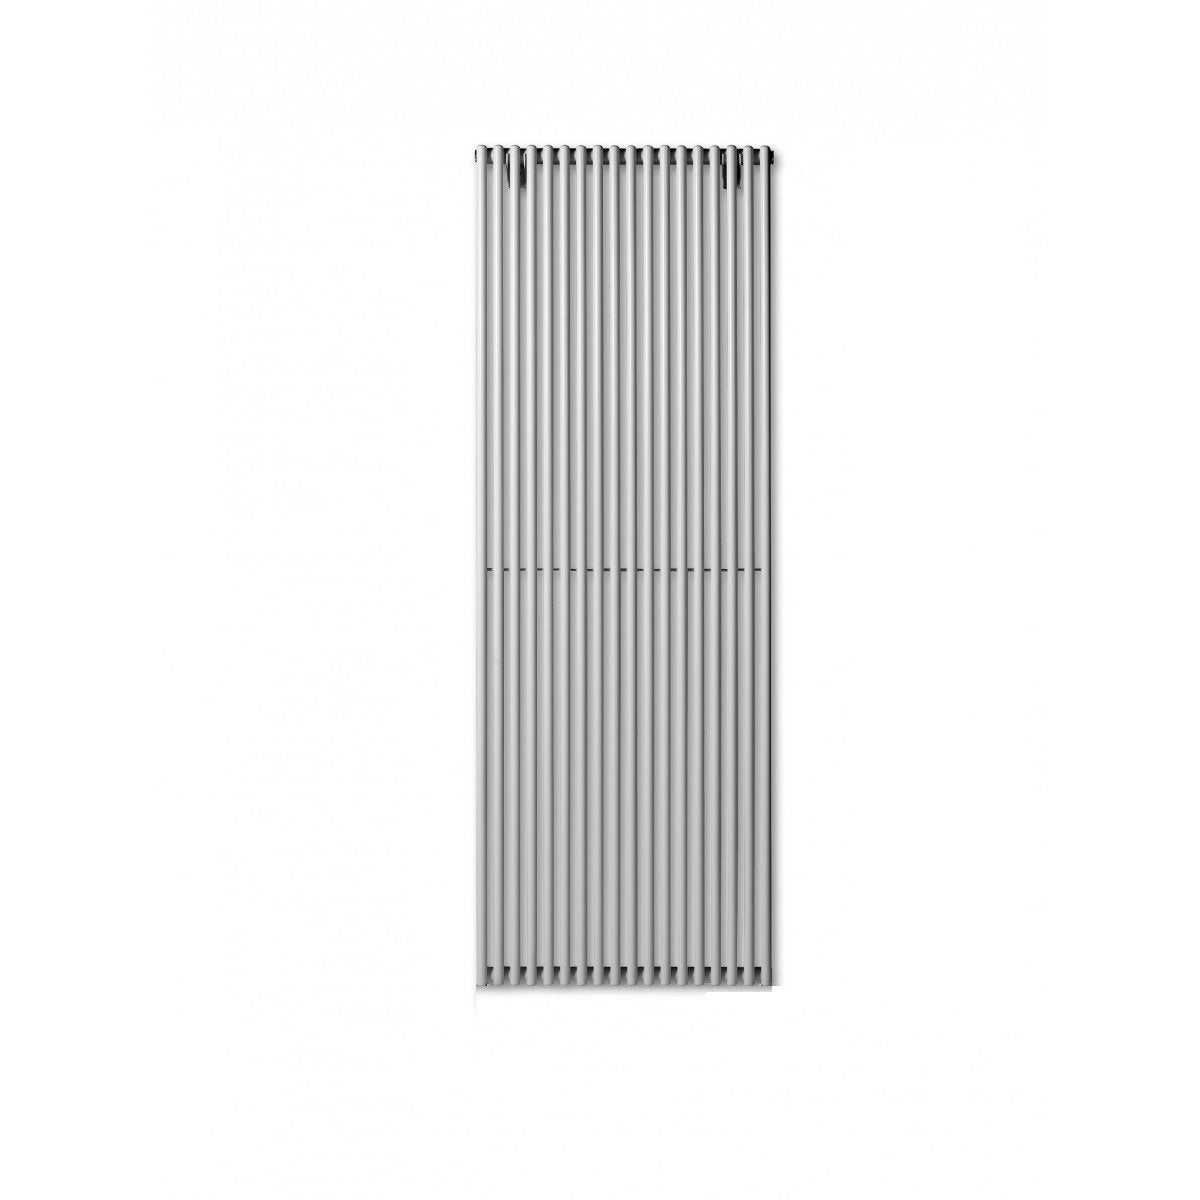 Radiateur chauffage central transparence gris anthracite for Chauffage exterieur leroy merlin